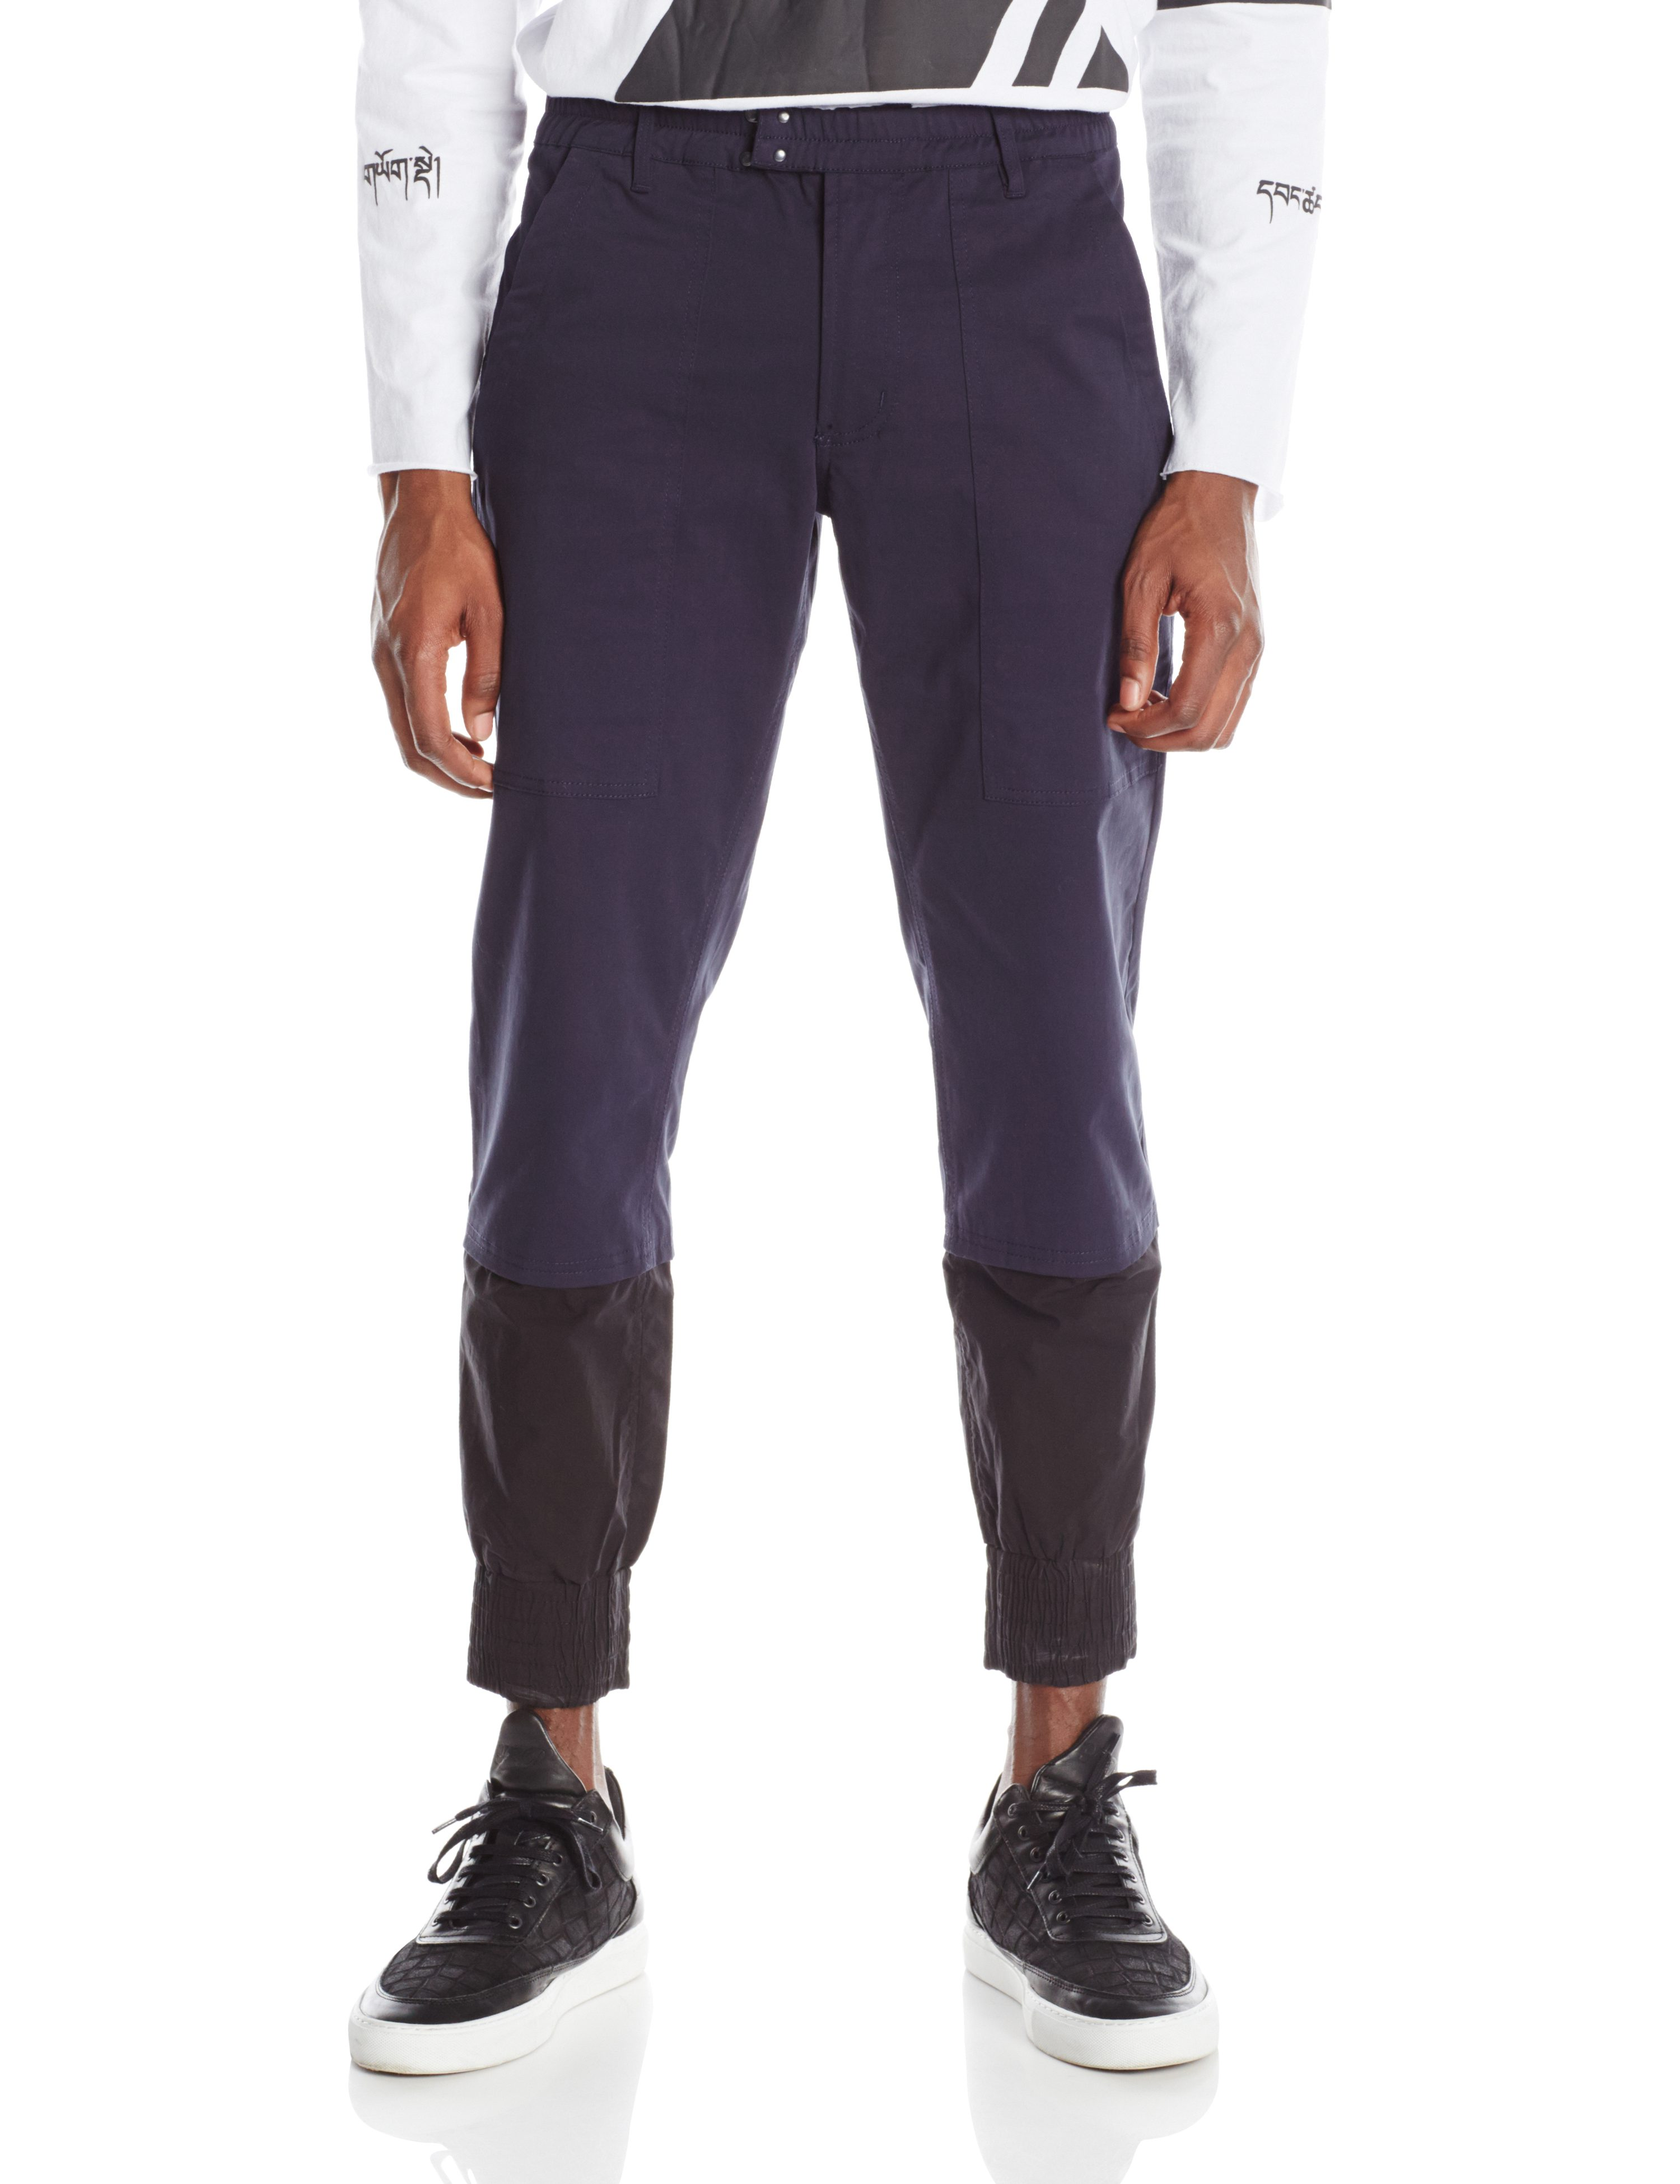 FRONT-GLITCH PANT NAVY BLUE.0339